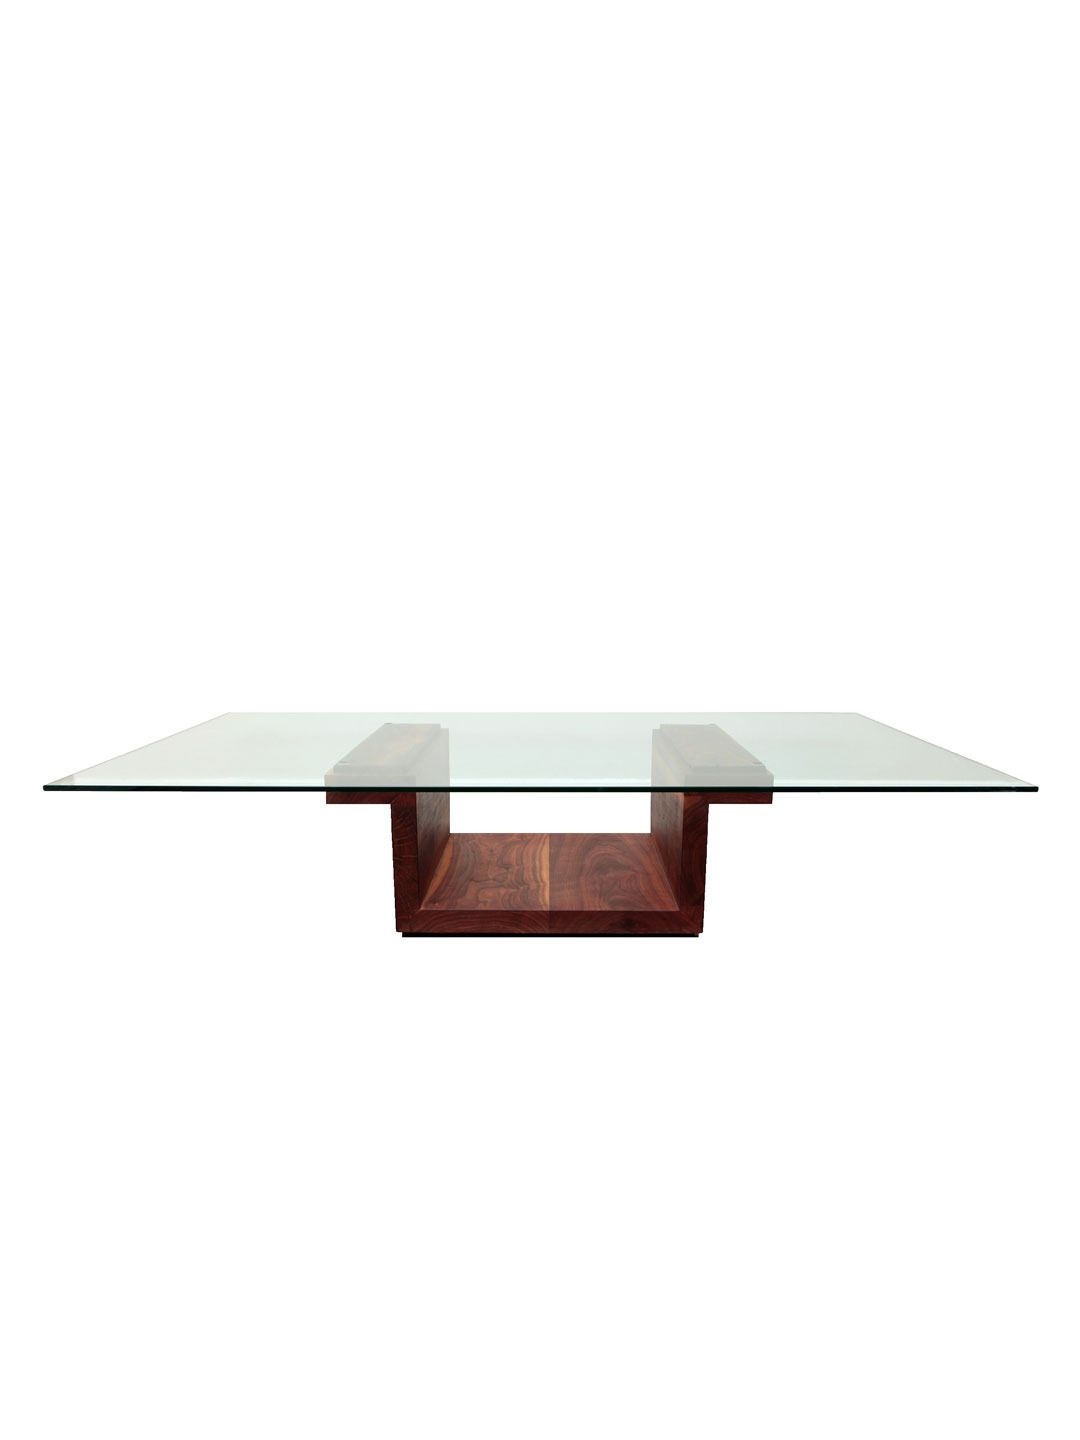 Black Walnut Center Table 30 Gilt Home Center Table Table 30th Glass [ 1440 x 1080 Pixel ]